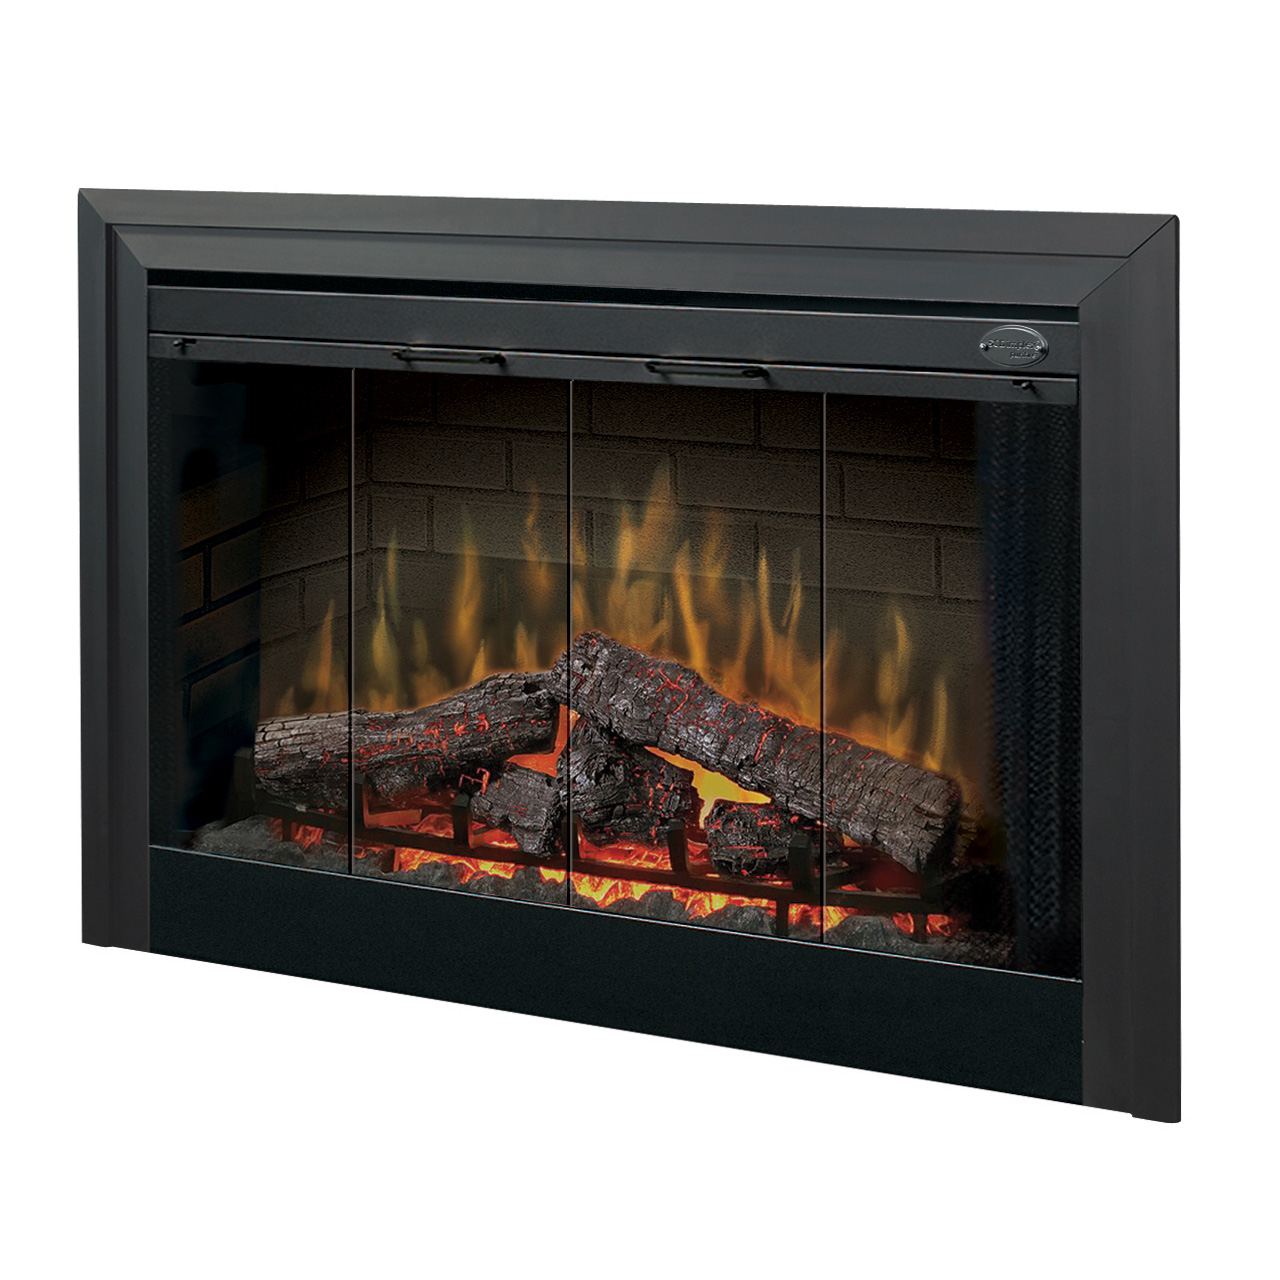 45 Deluxe Built-in Electric Firebox